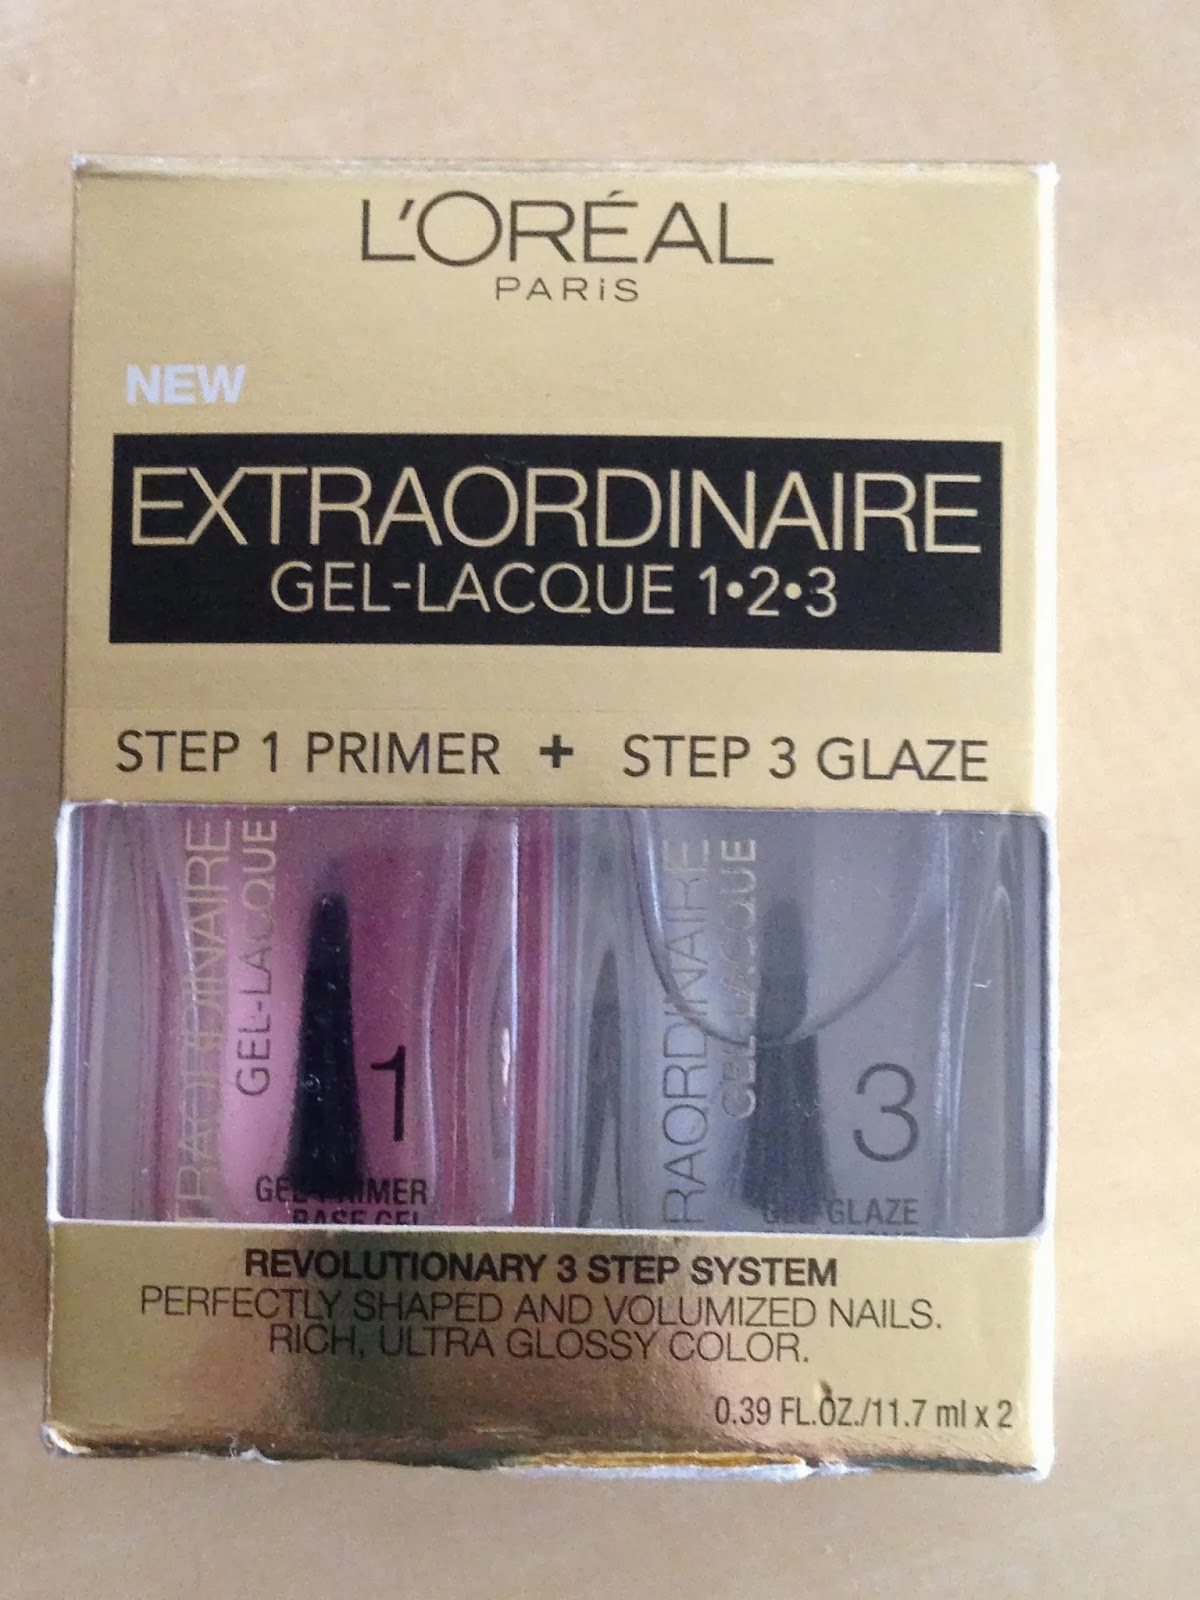 l'oreal nail polish, gel lacque system, nails, polish, gel manicure, diy manicure,